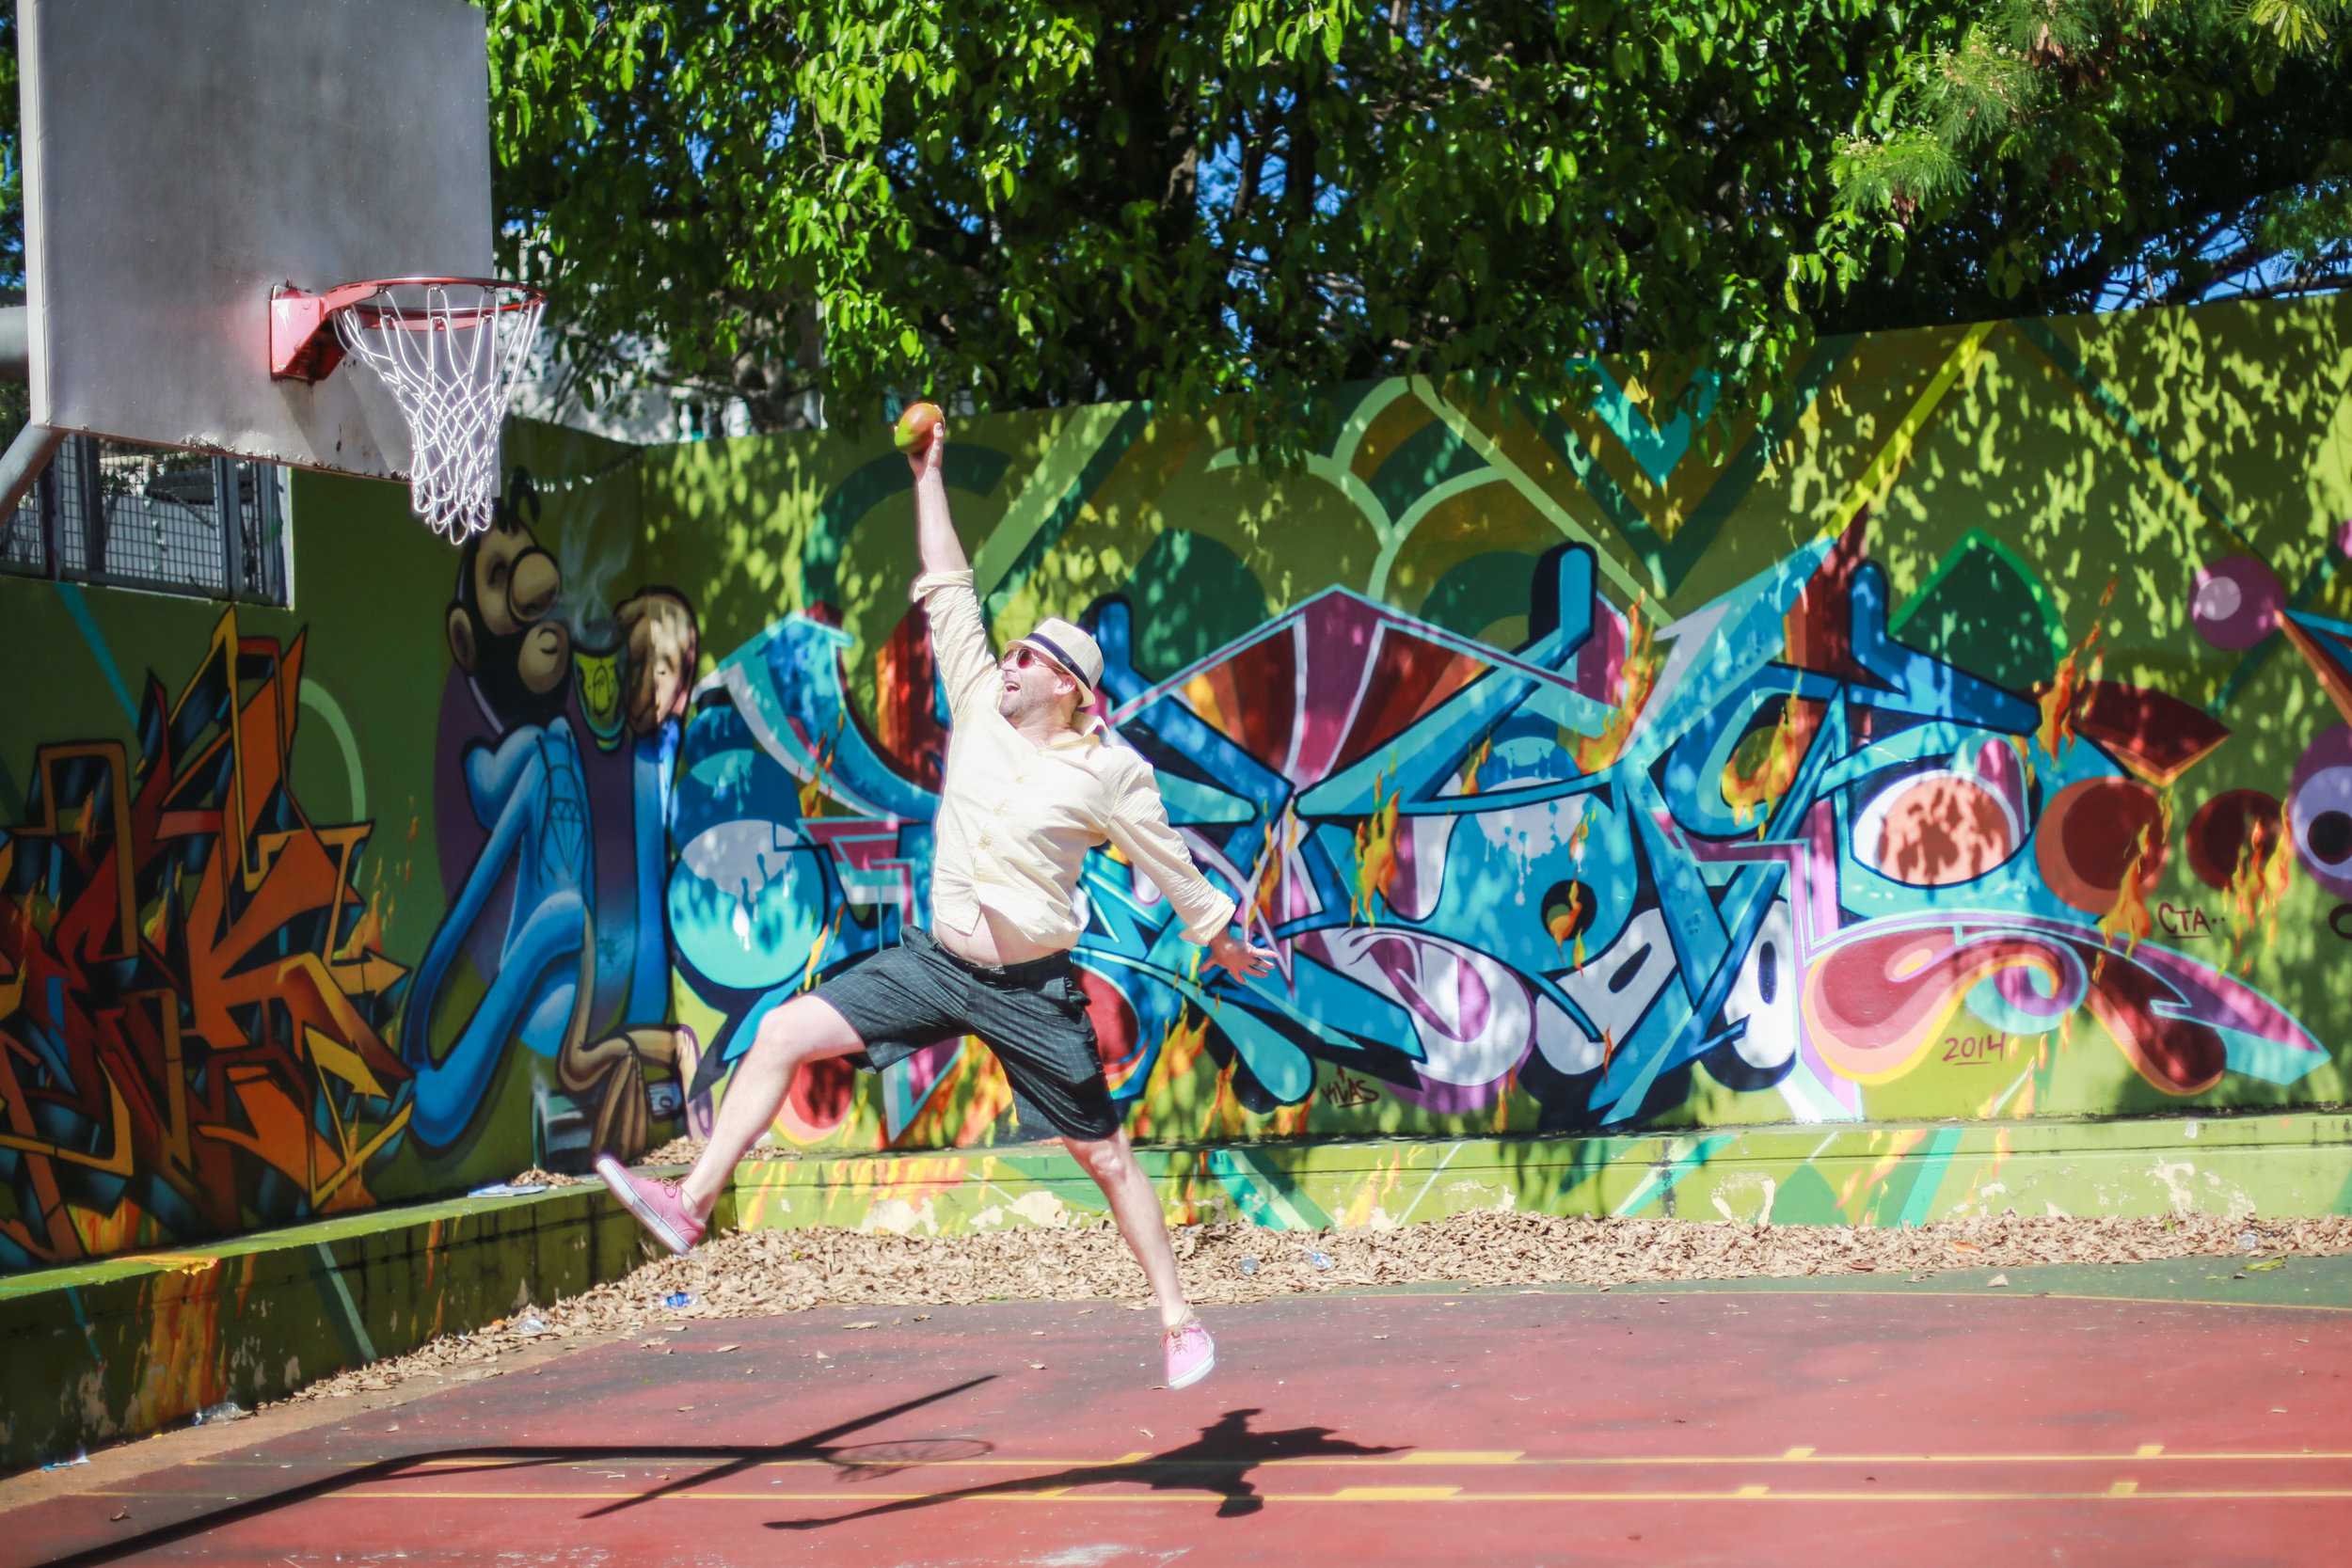 Never a dull moment with this one.... While walking past a local bball court, this old college hoops player couldn't resist attempting to dunk a mango. Key word being attempt. (He was more of a 3point wonder.)